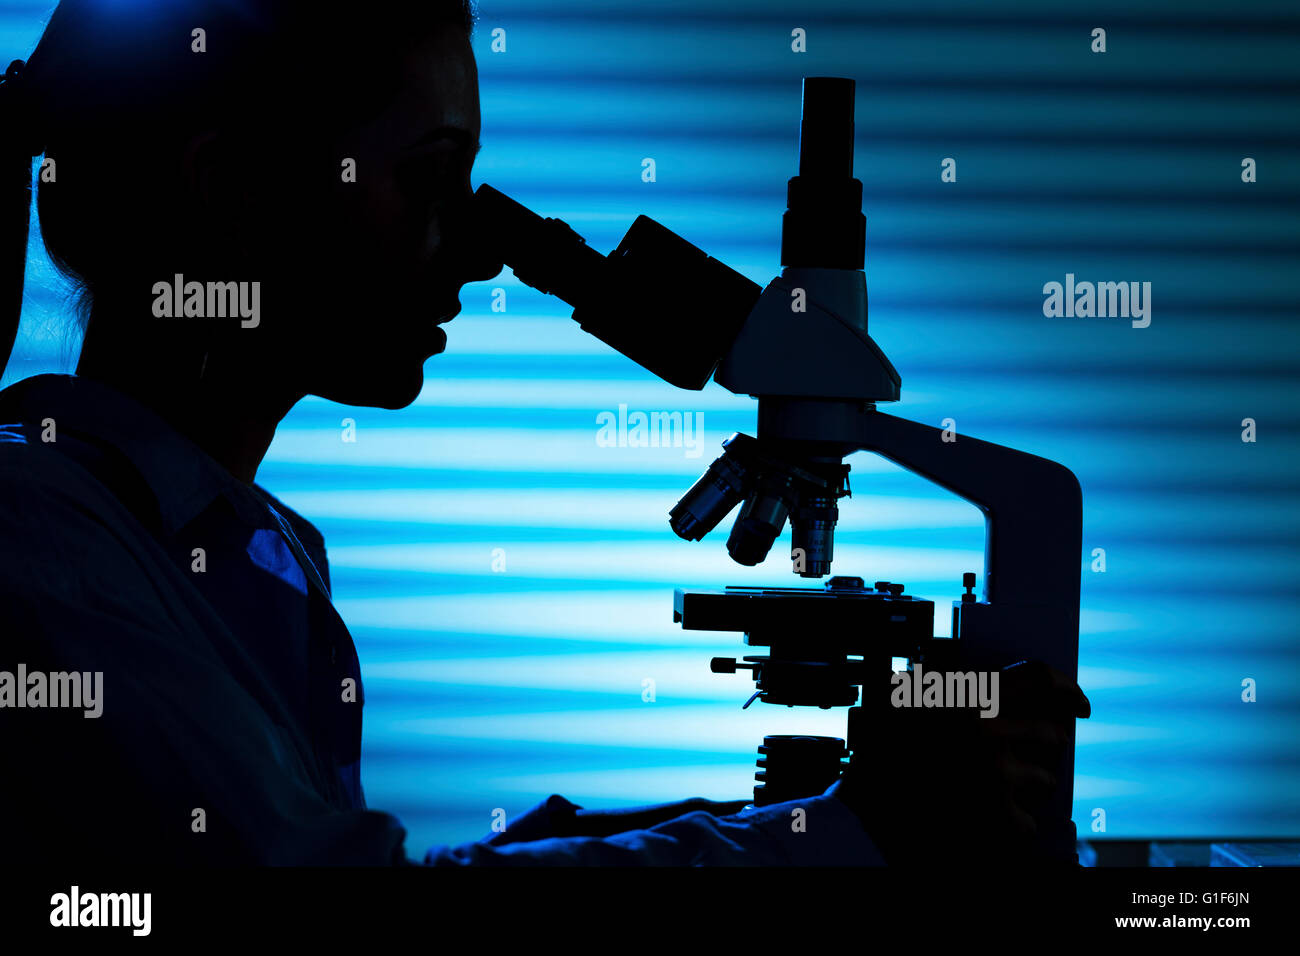 MODEL RELEASED. Silhouette of a female scientist using a microscope. - Stock Image